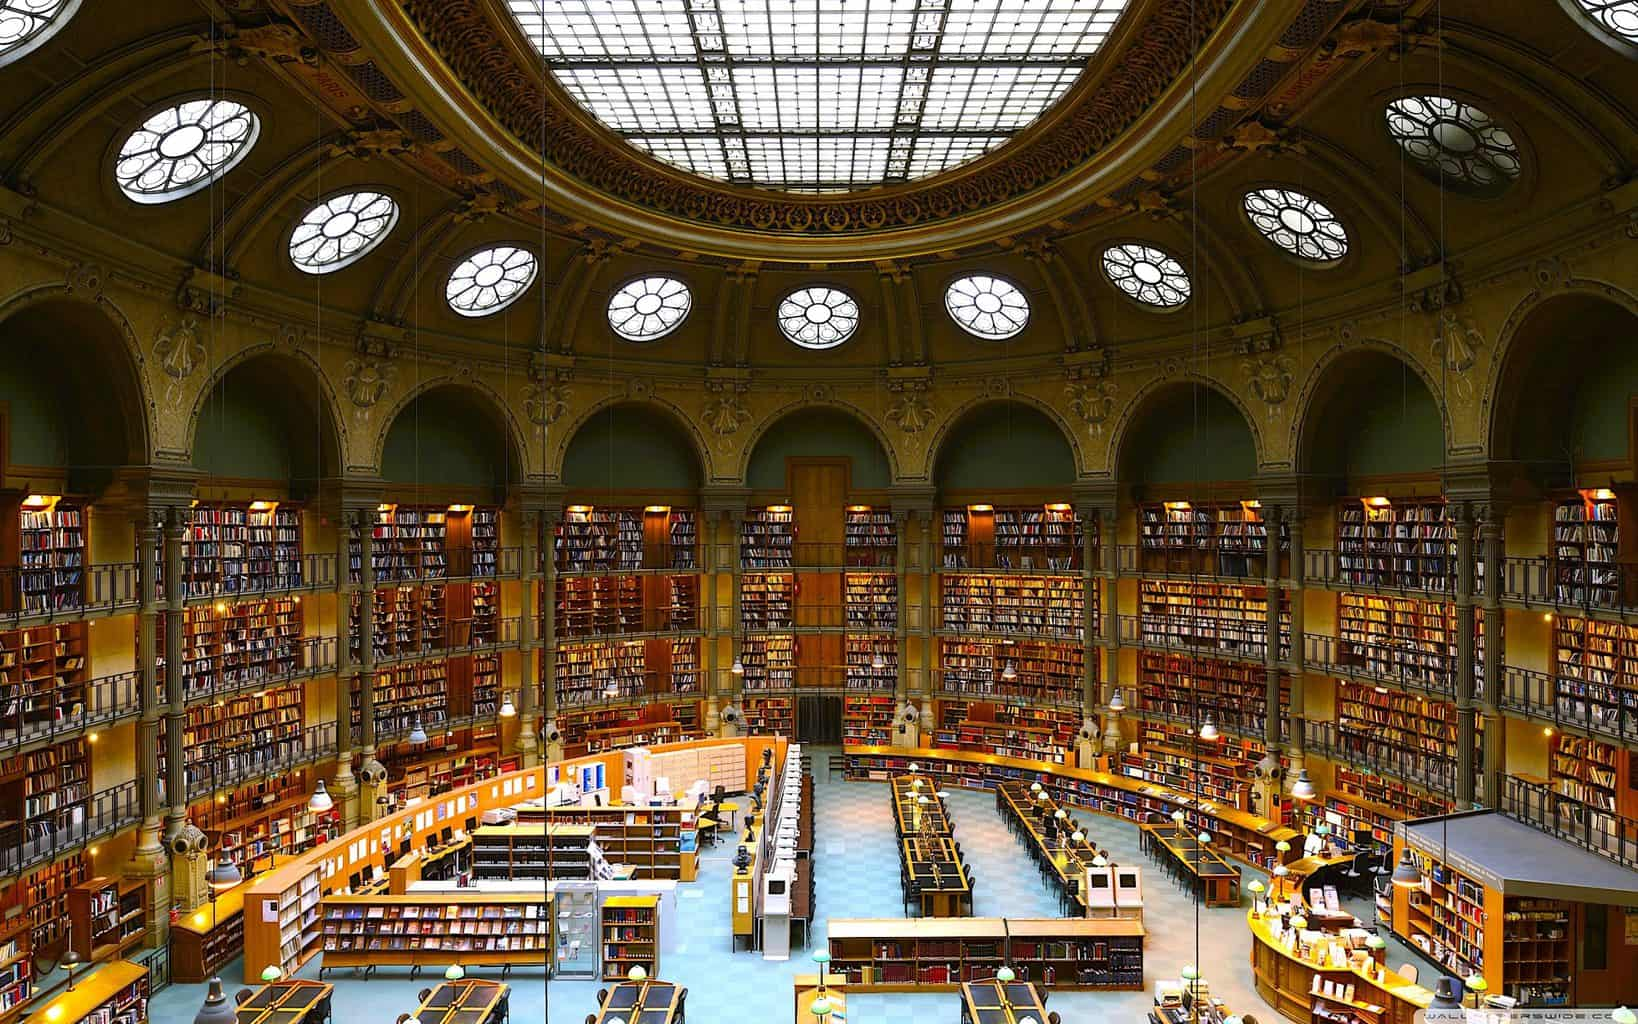 The expansive interior of the Bibliothèque Nationale de France or the National Library of France (image sourced from Flickr.com).